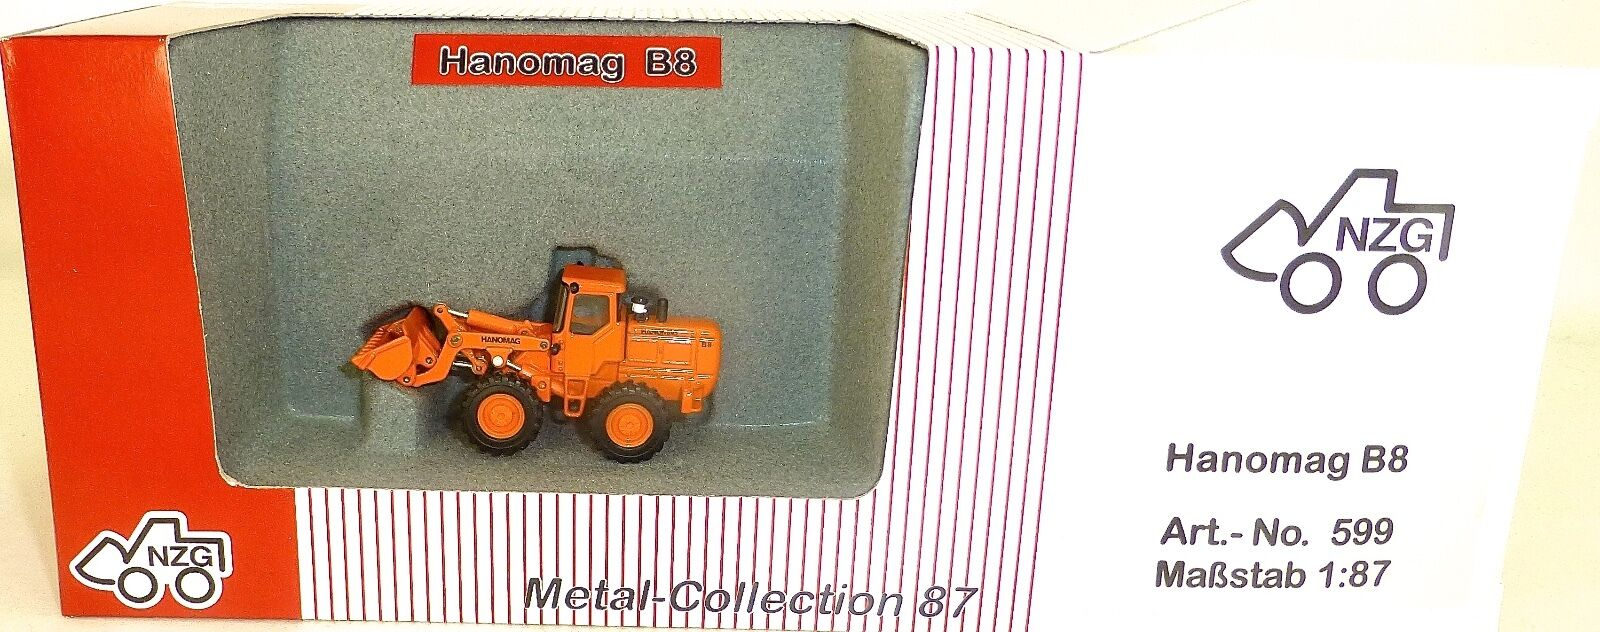 Hanomag B8 Radlader Radlader Radlader orange Nzg 599 Metal Collection 1 87 Ovp Ld2 Μ f59042